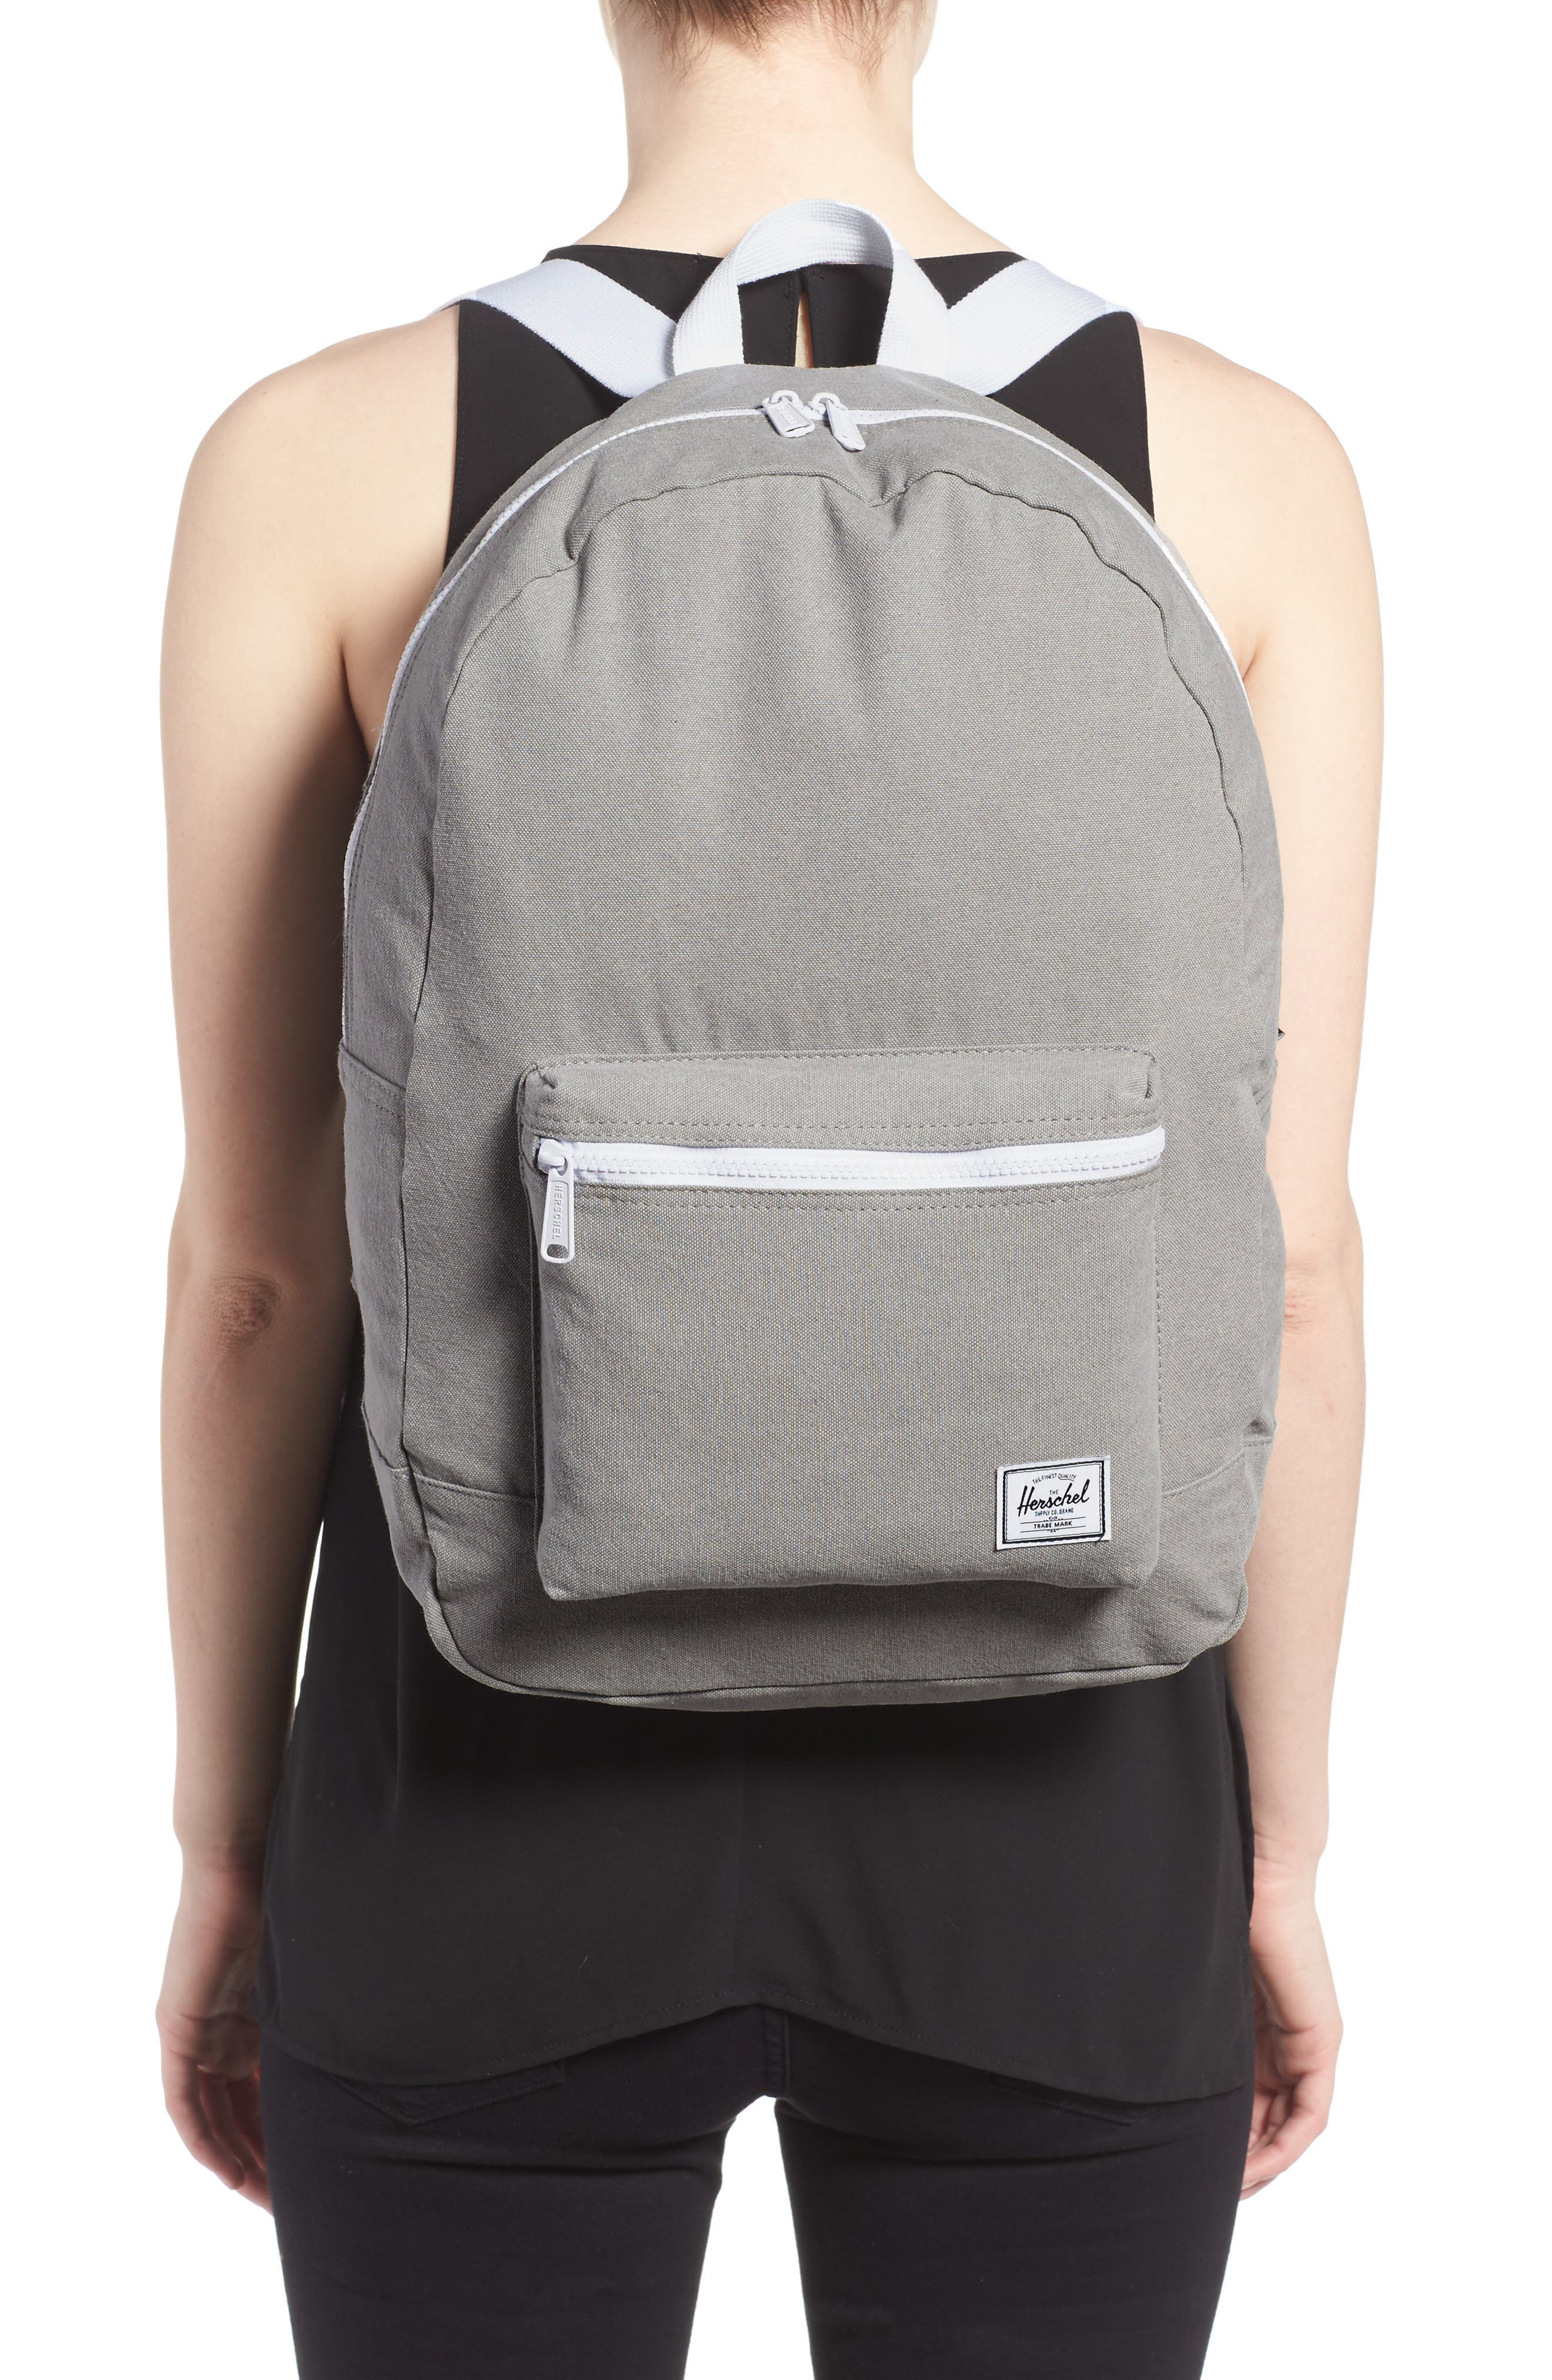 Cotton Casuals Daypack Backpack,                             Alternate thumbnail 14, color,